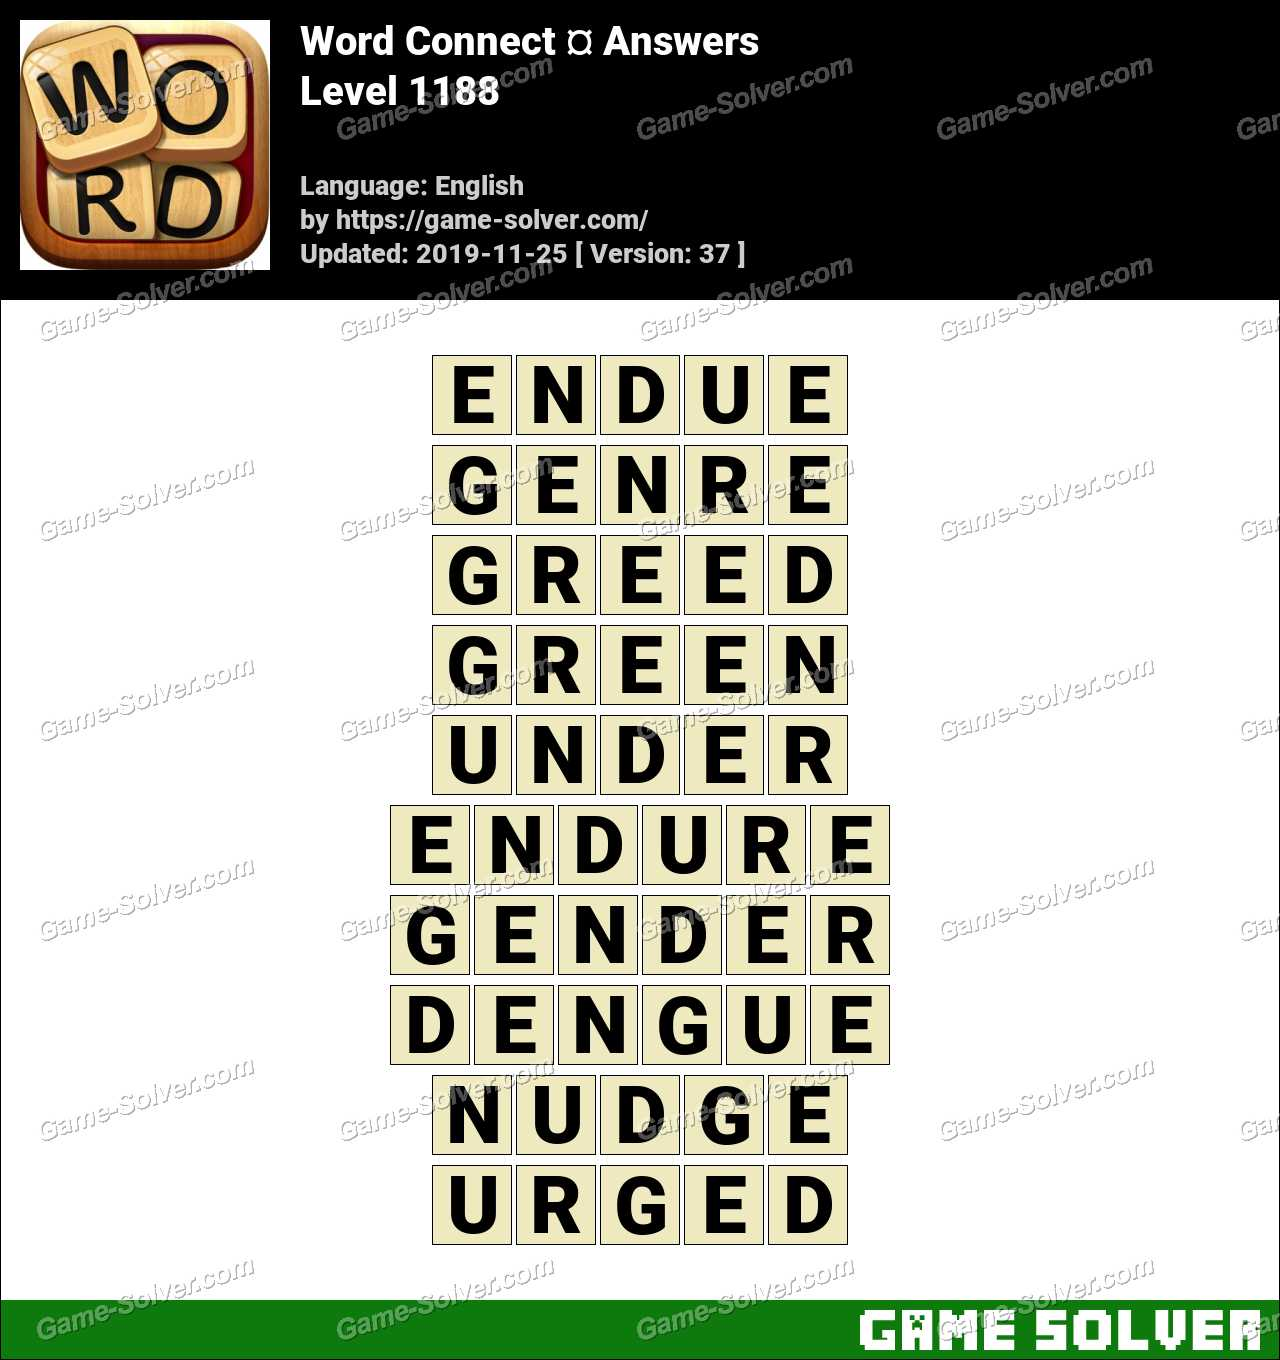 Word Connect Level 1188 Answers